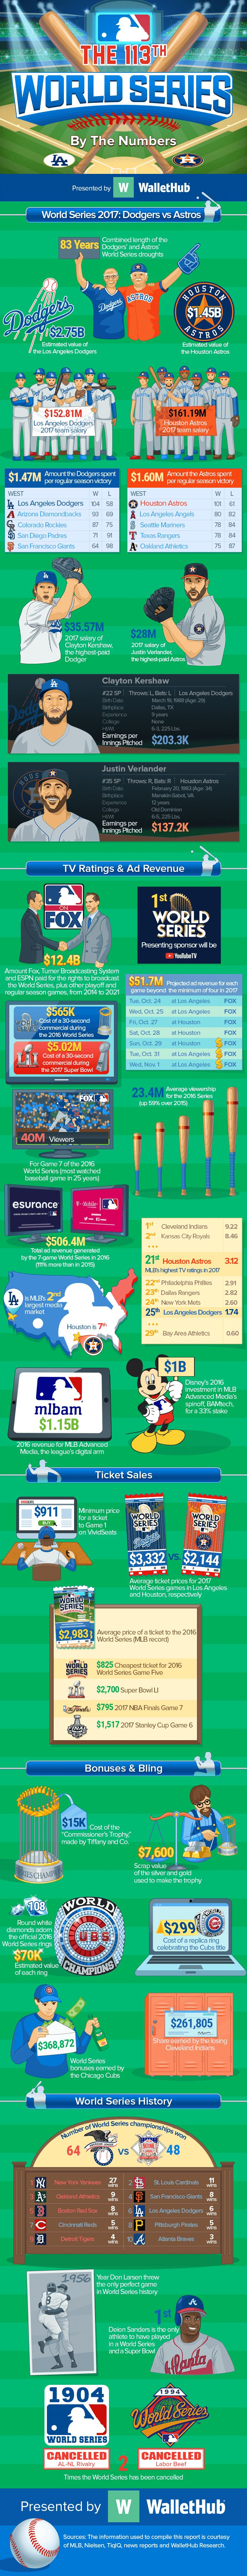 The 113th World Series by the Numbers